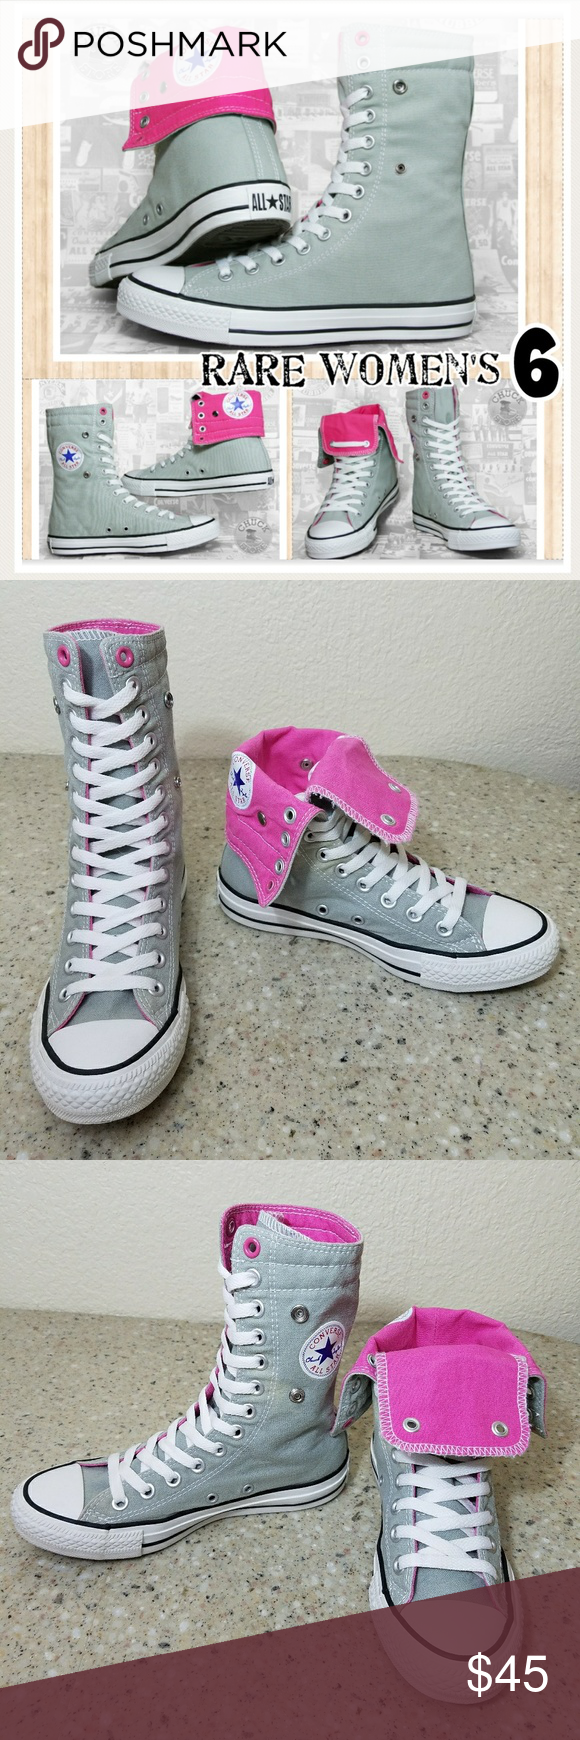 d6b9fe67f1a8 Pink Color · High Tops · Designer Handbags · RARE Converse All Star Women s  6 Converse All Star shoes. These are RARE